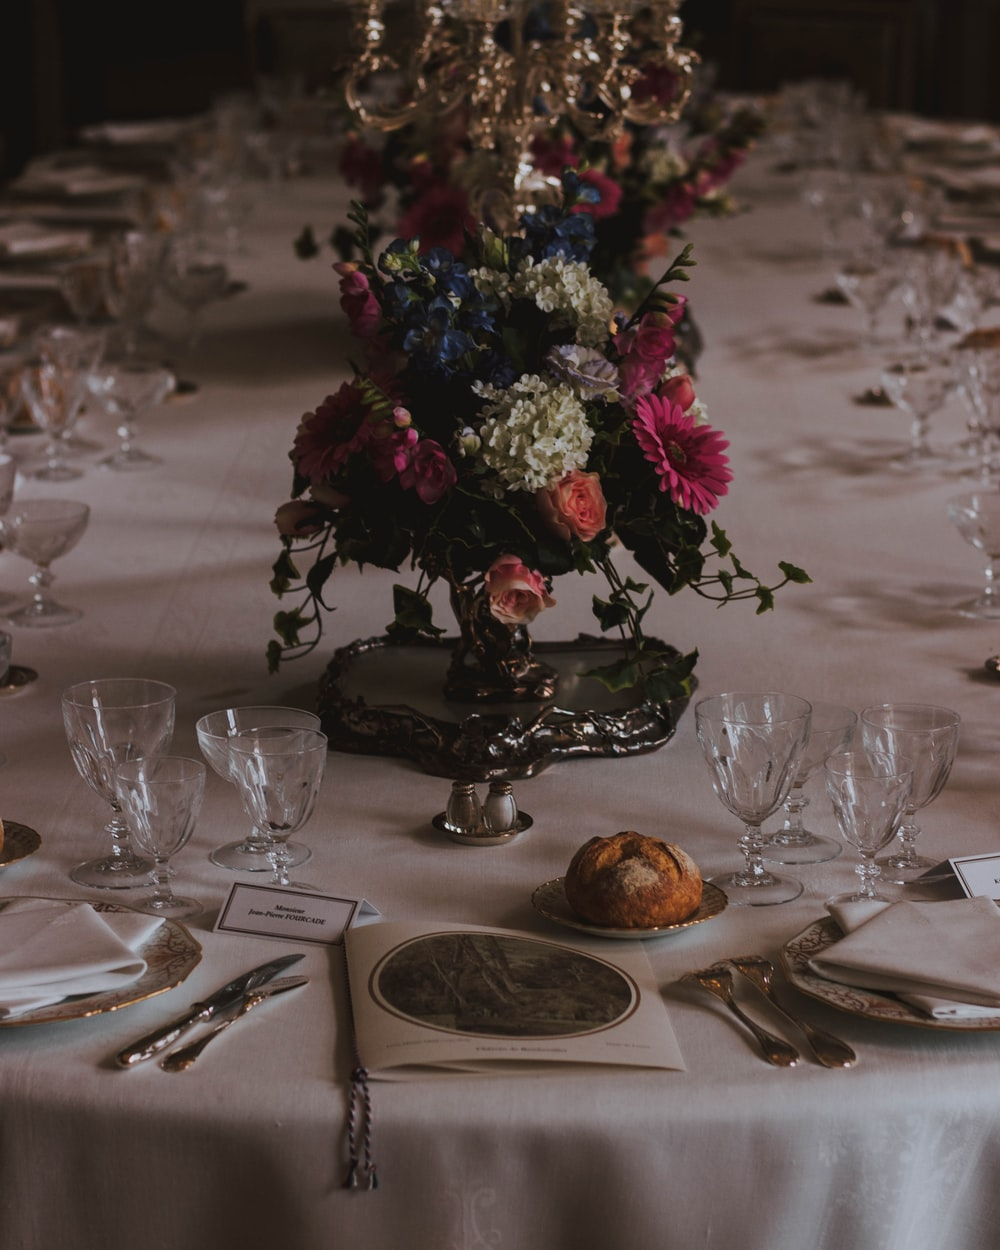 wine glasses on table with flower arrangement